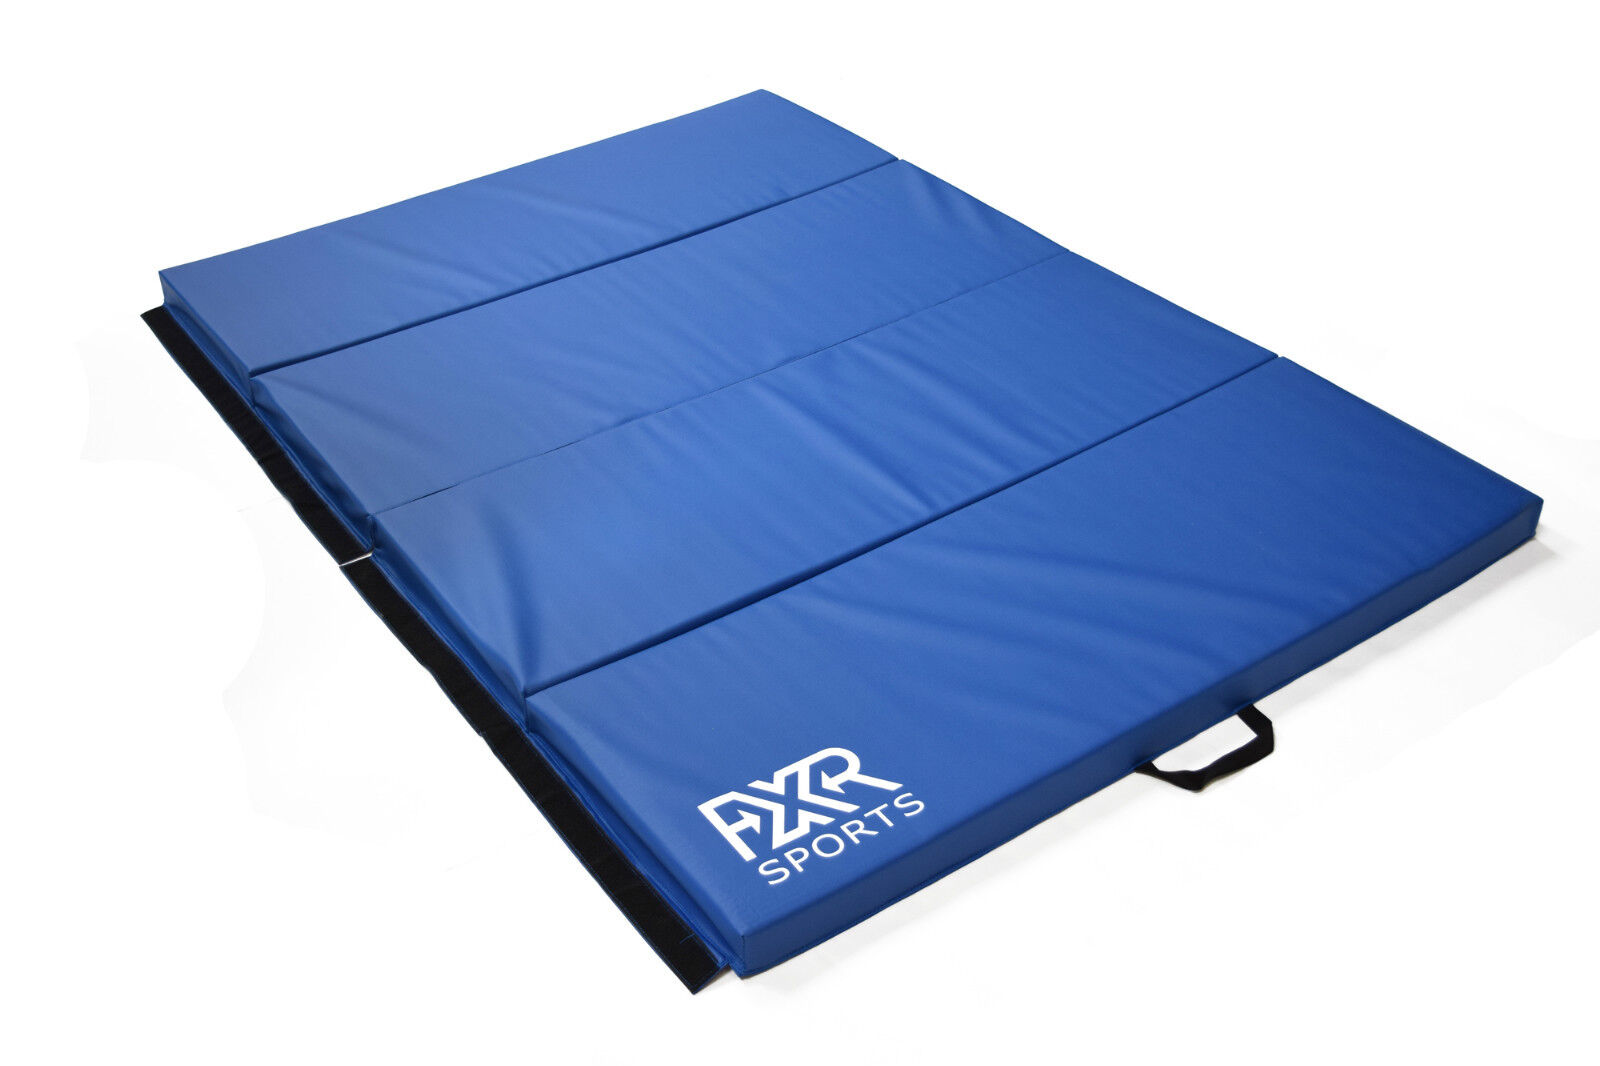 fxr sports 6ft8ft folding crash gymnastic exercise fitness mats gym mat physio